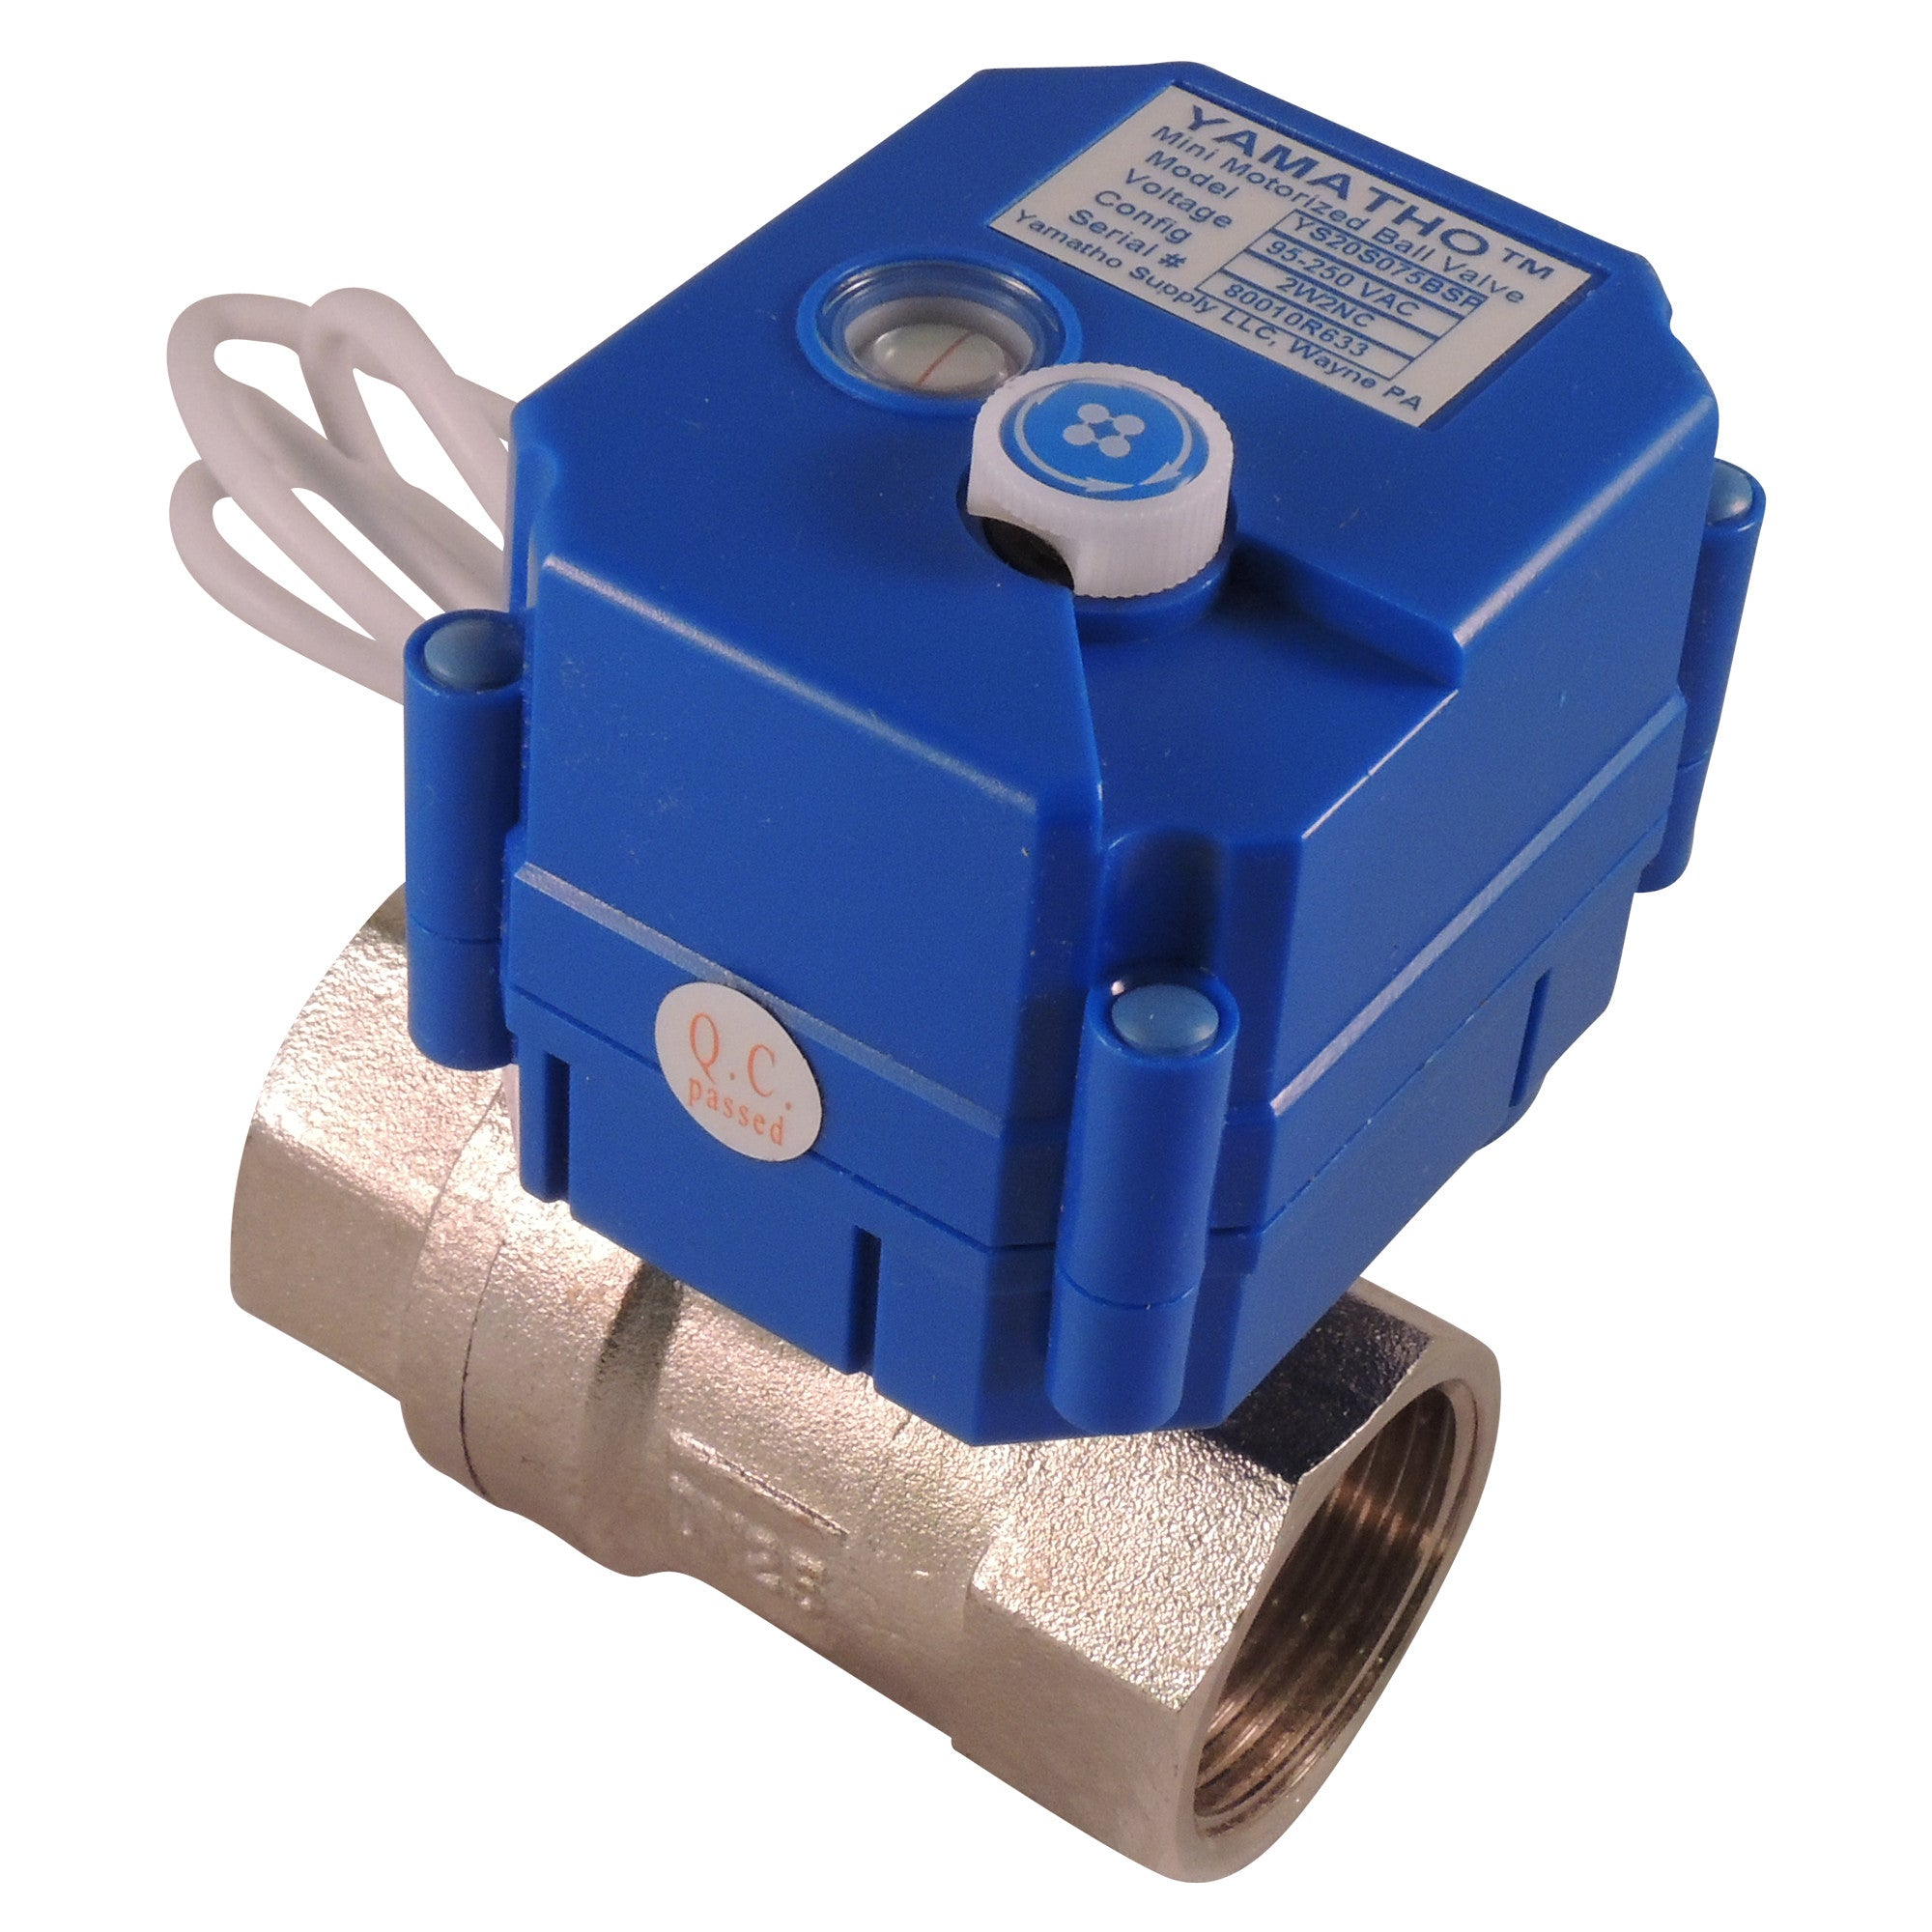 Electric motorized ball valve YS20S, 2 wires actuator 95-250 VAC Normally Open  #yamavalve - Yamatho Supply